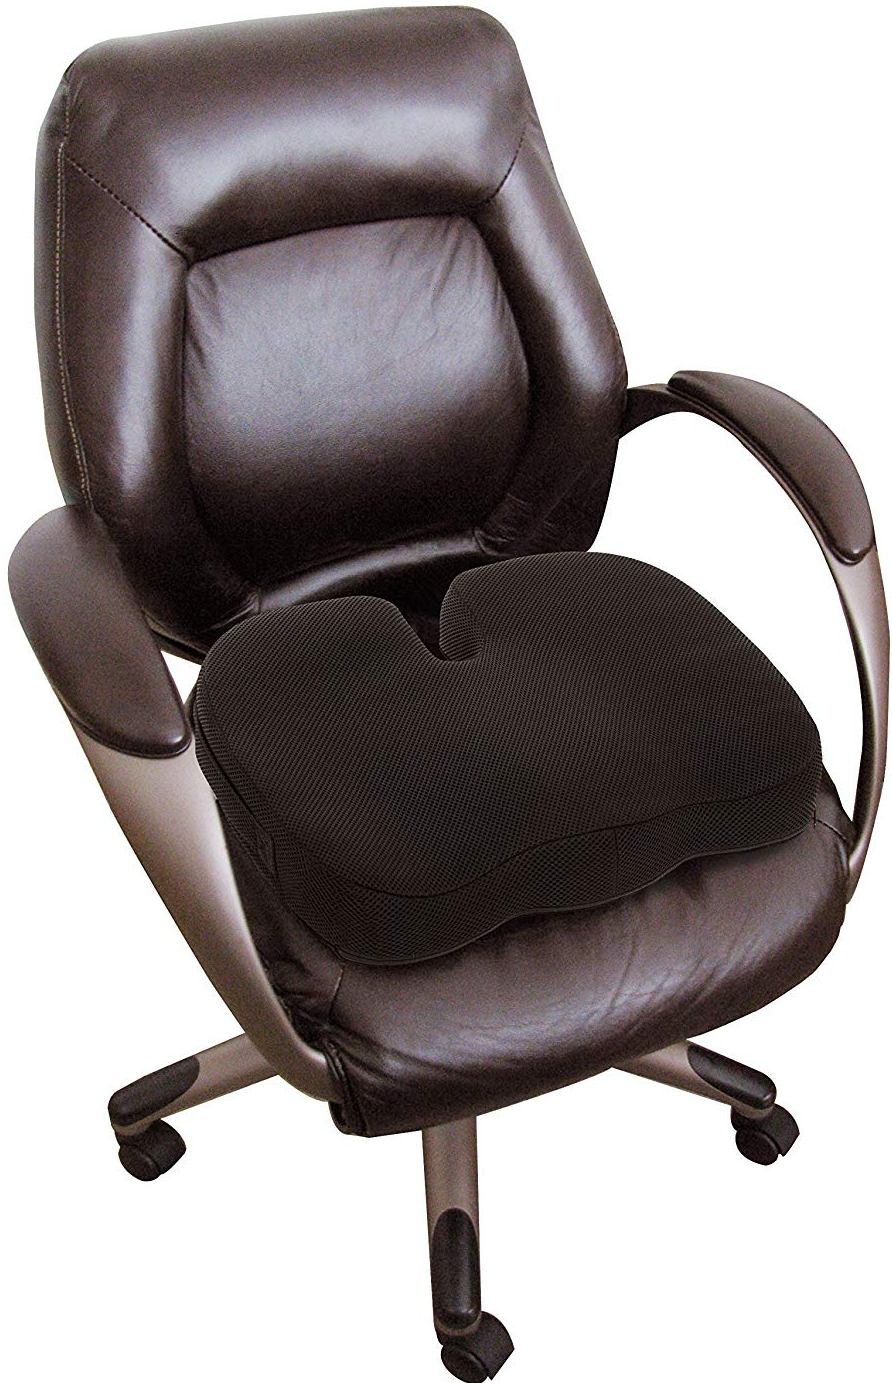 Desk Chair Seat Cushion Best Seat Cushion For Office Chairs Airplane Wheelchairs And